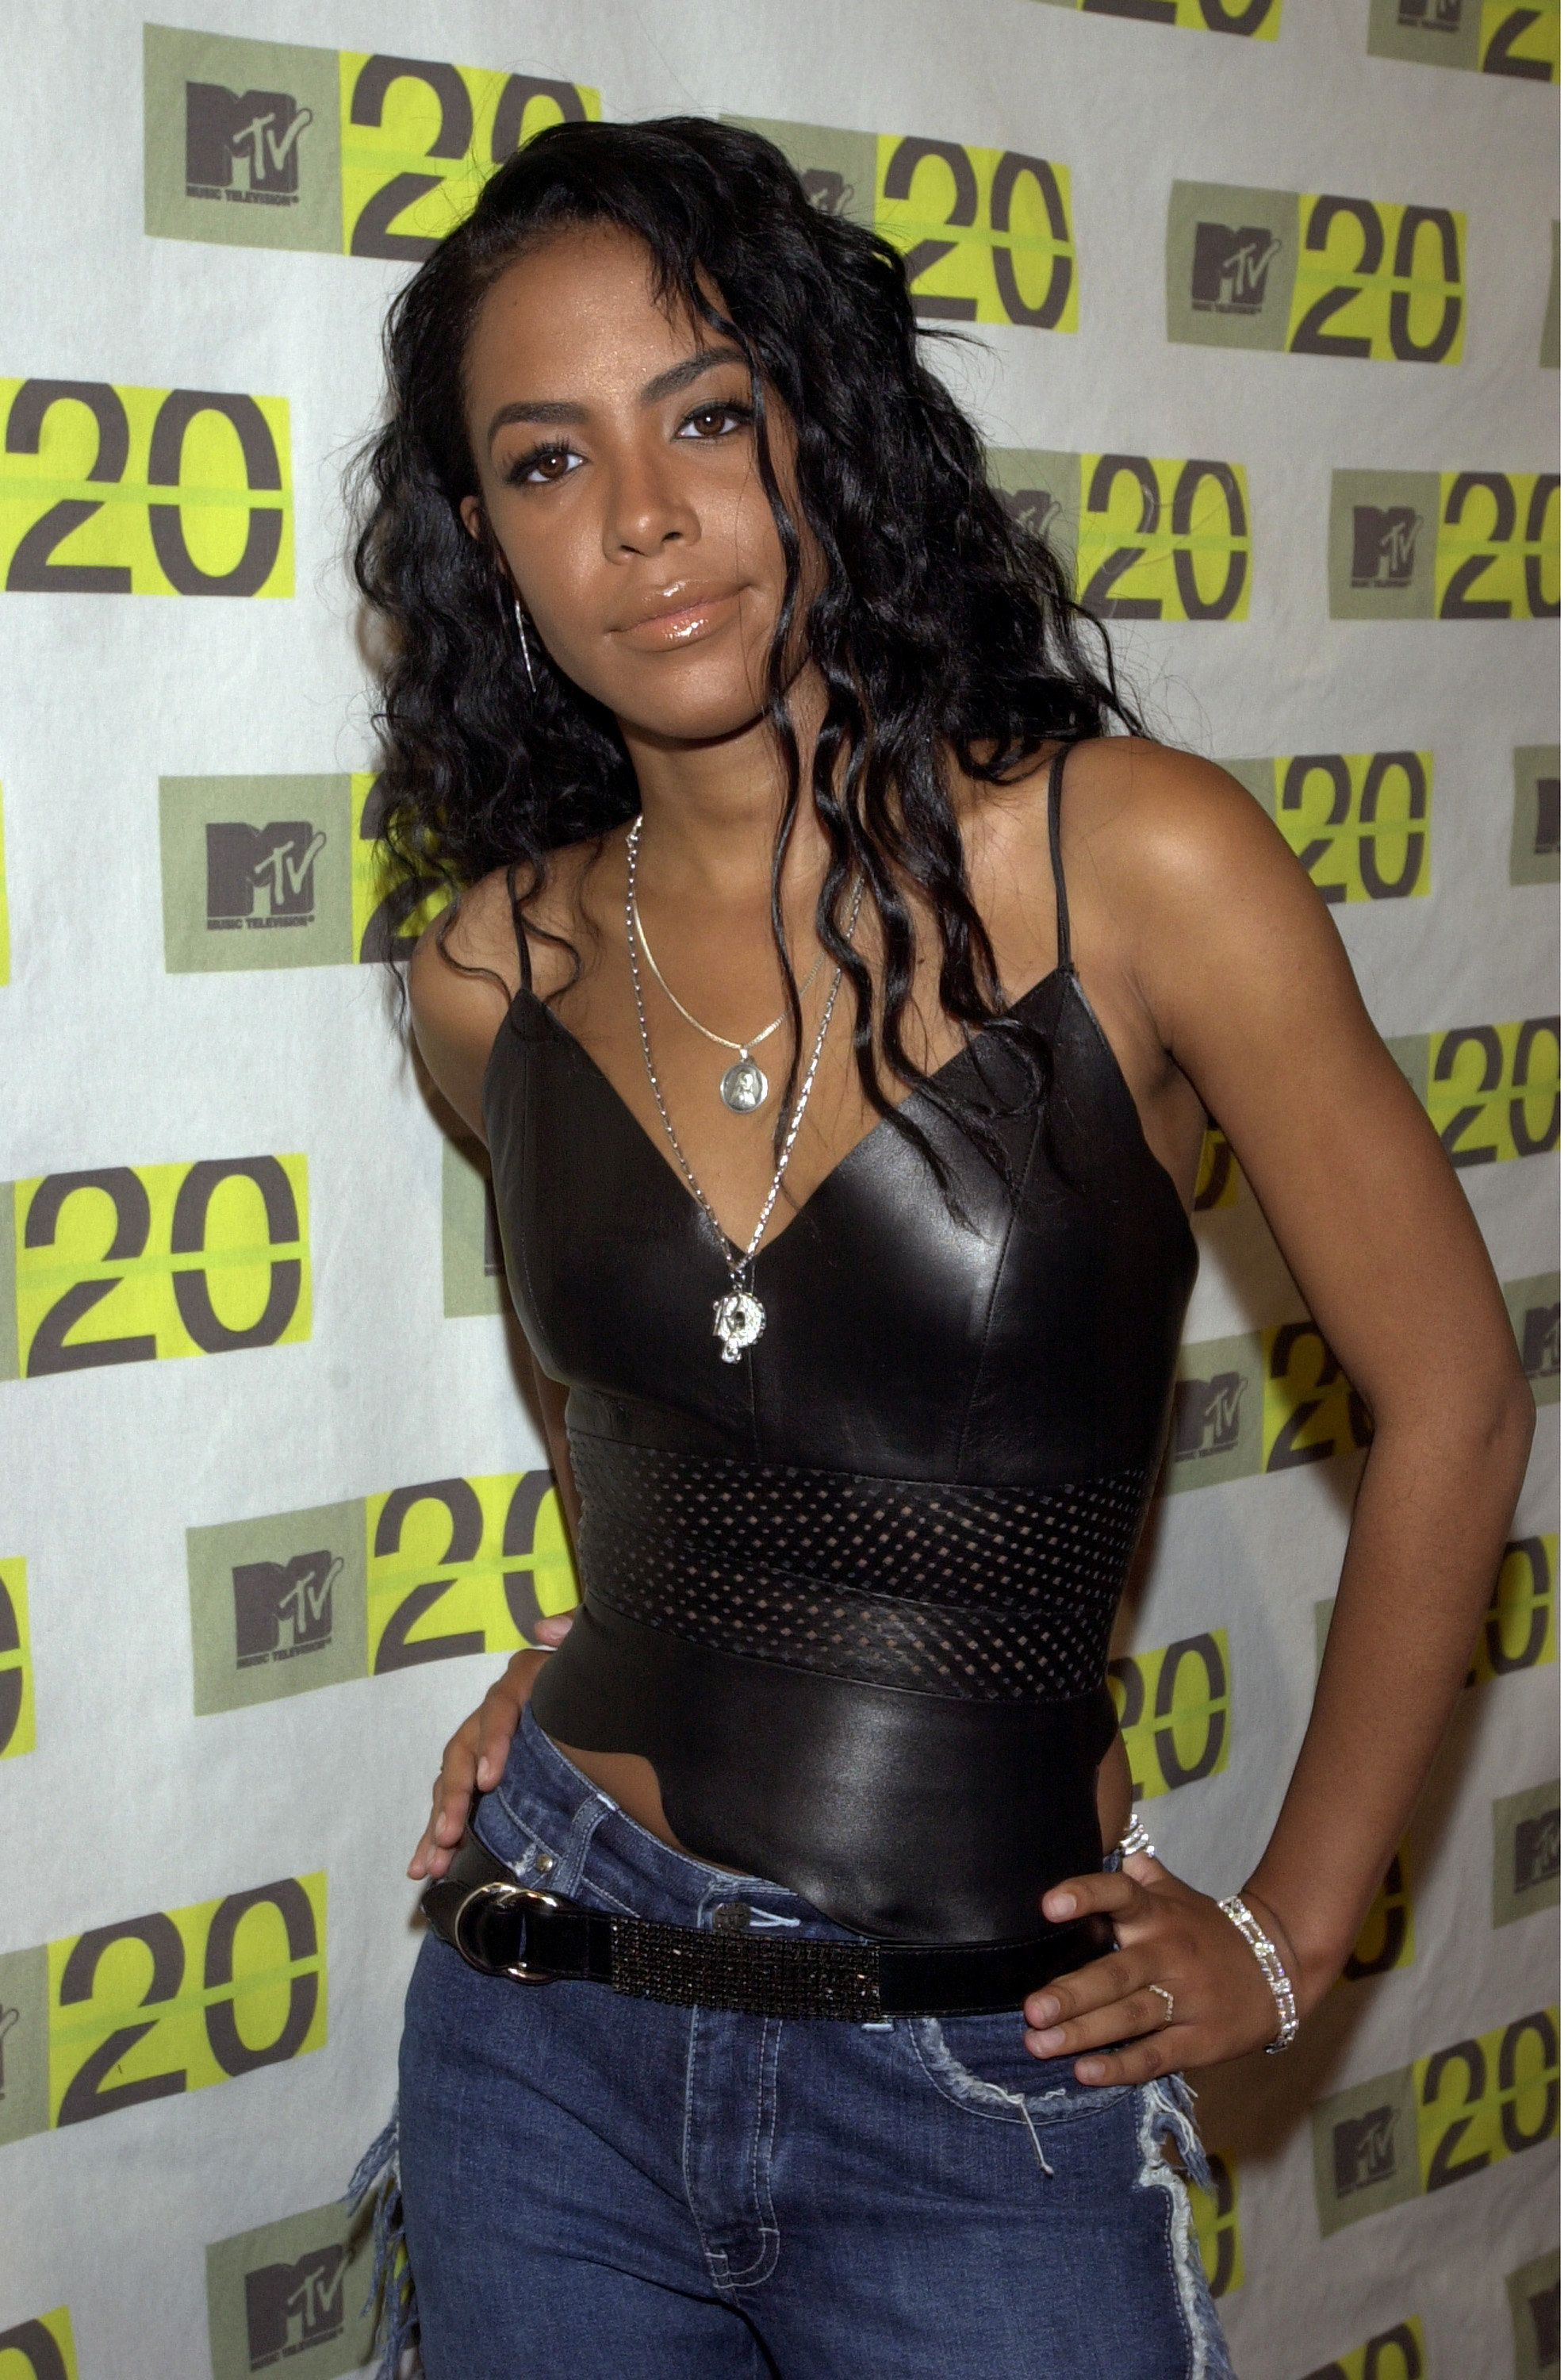 Aaliyah beautiful